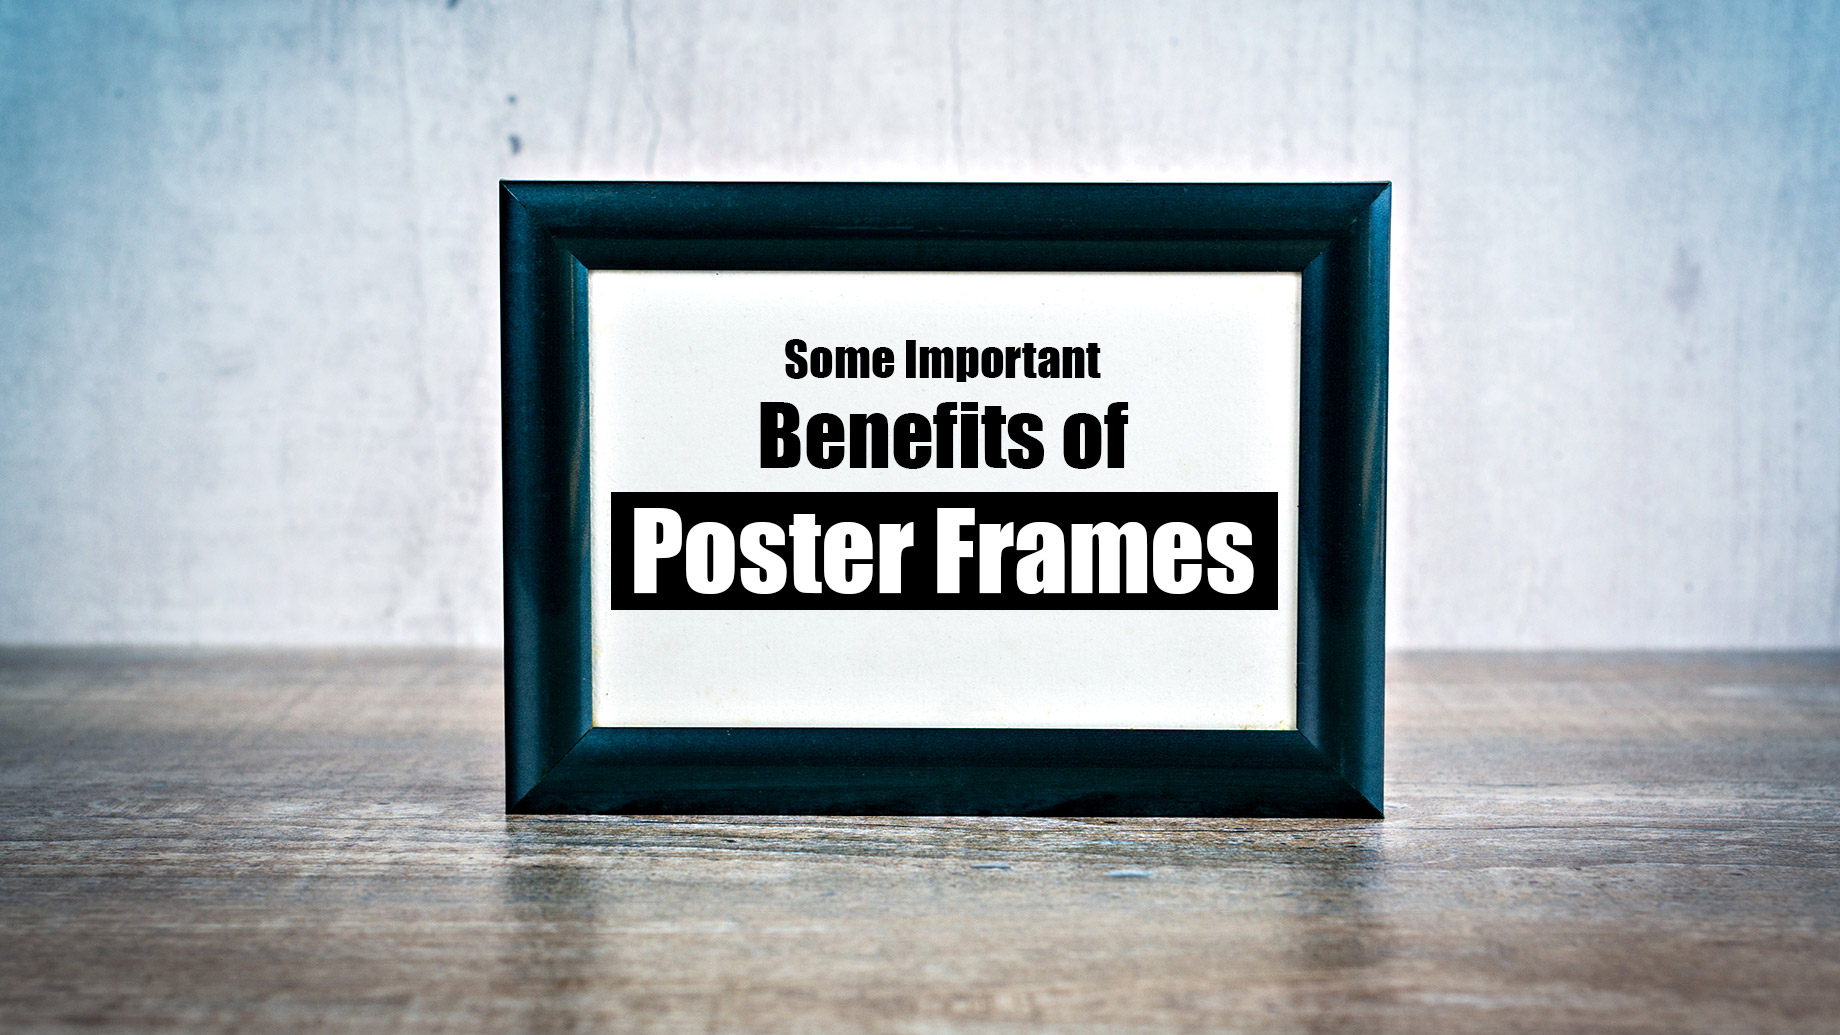 Some Important Benefits of Poster Frames